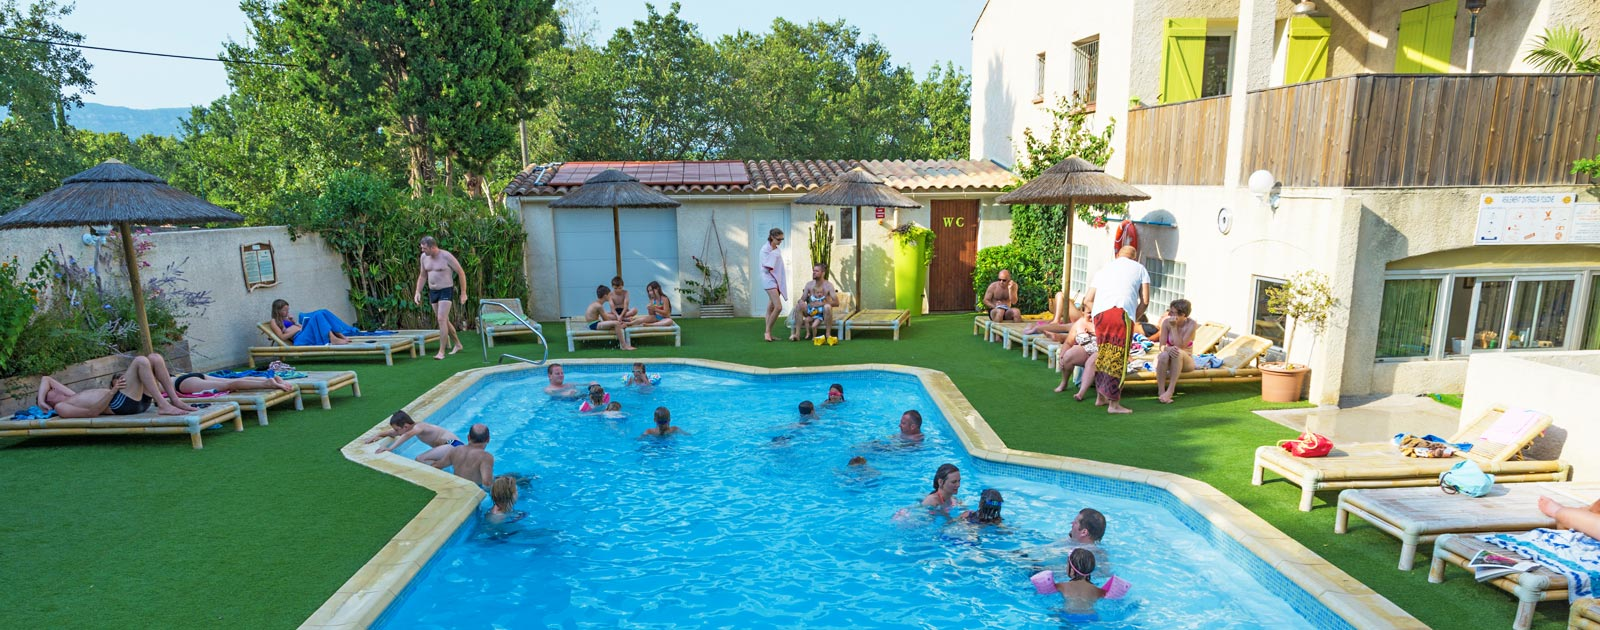 swimming pool fot holidays in provence